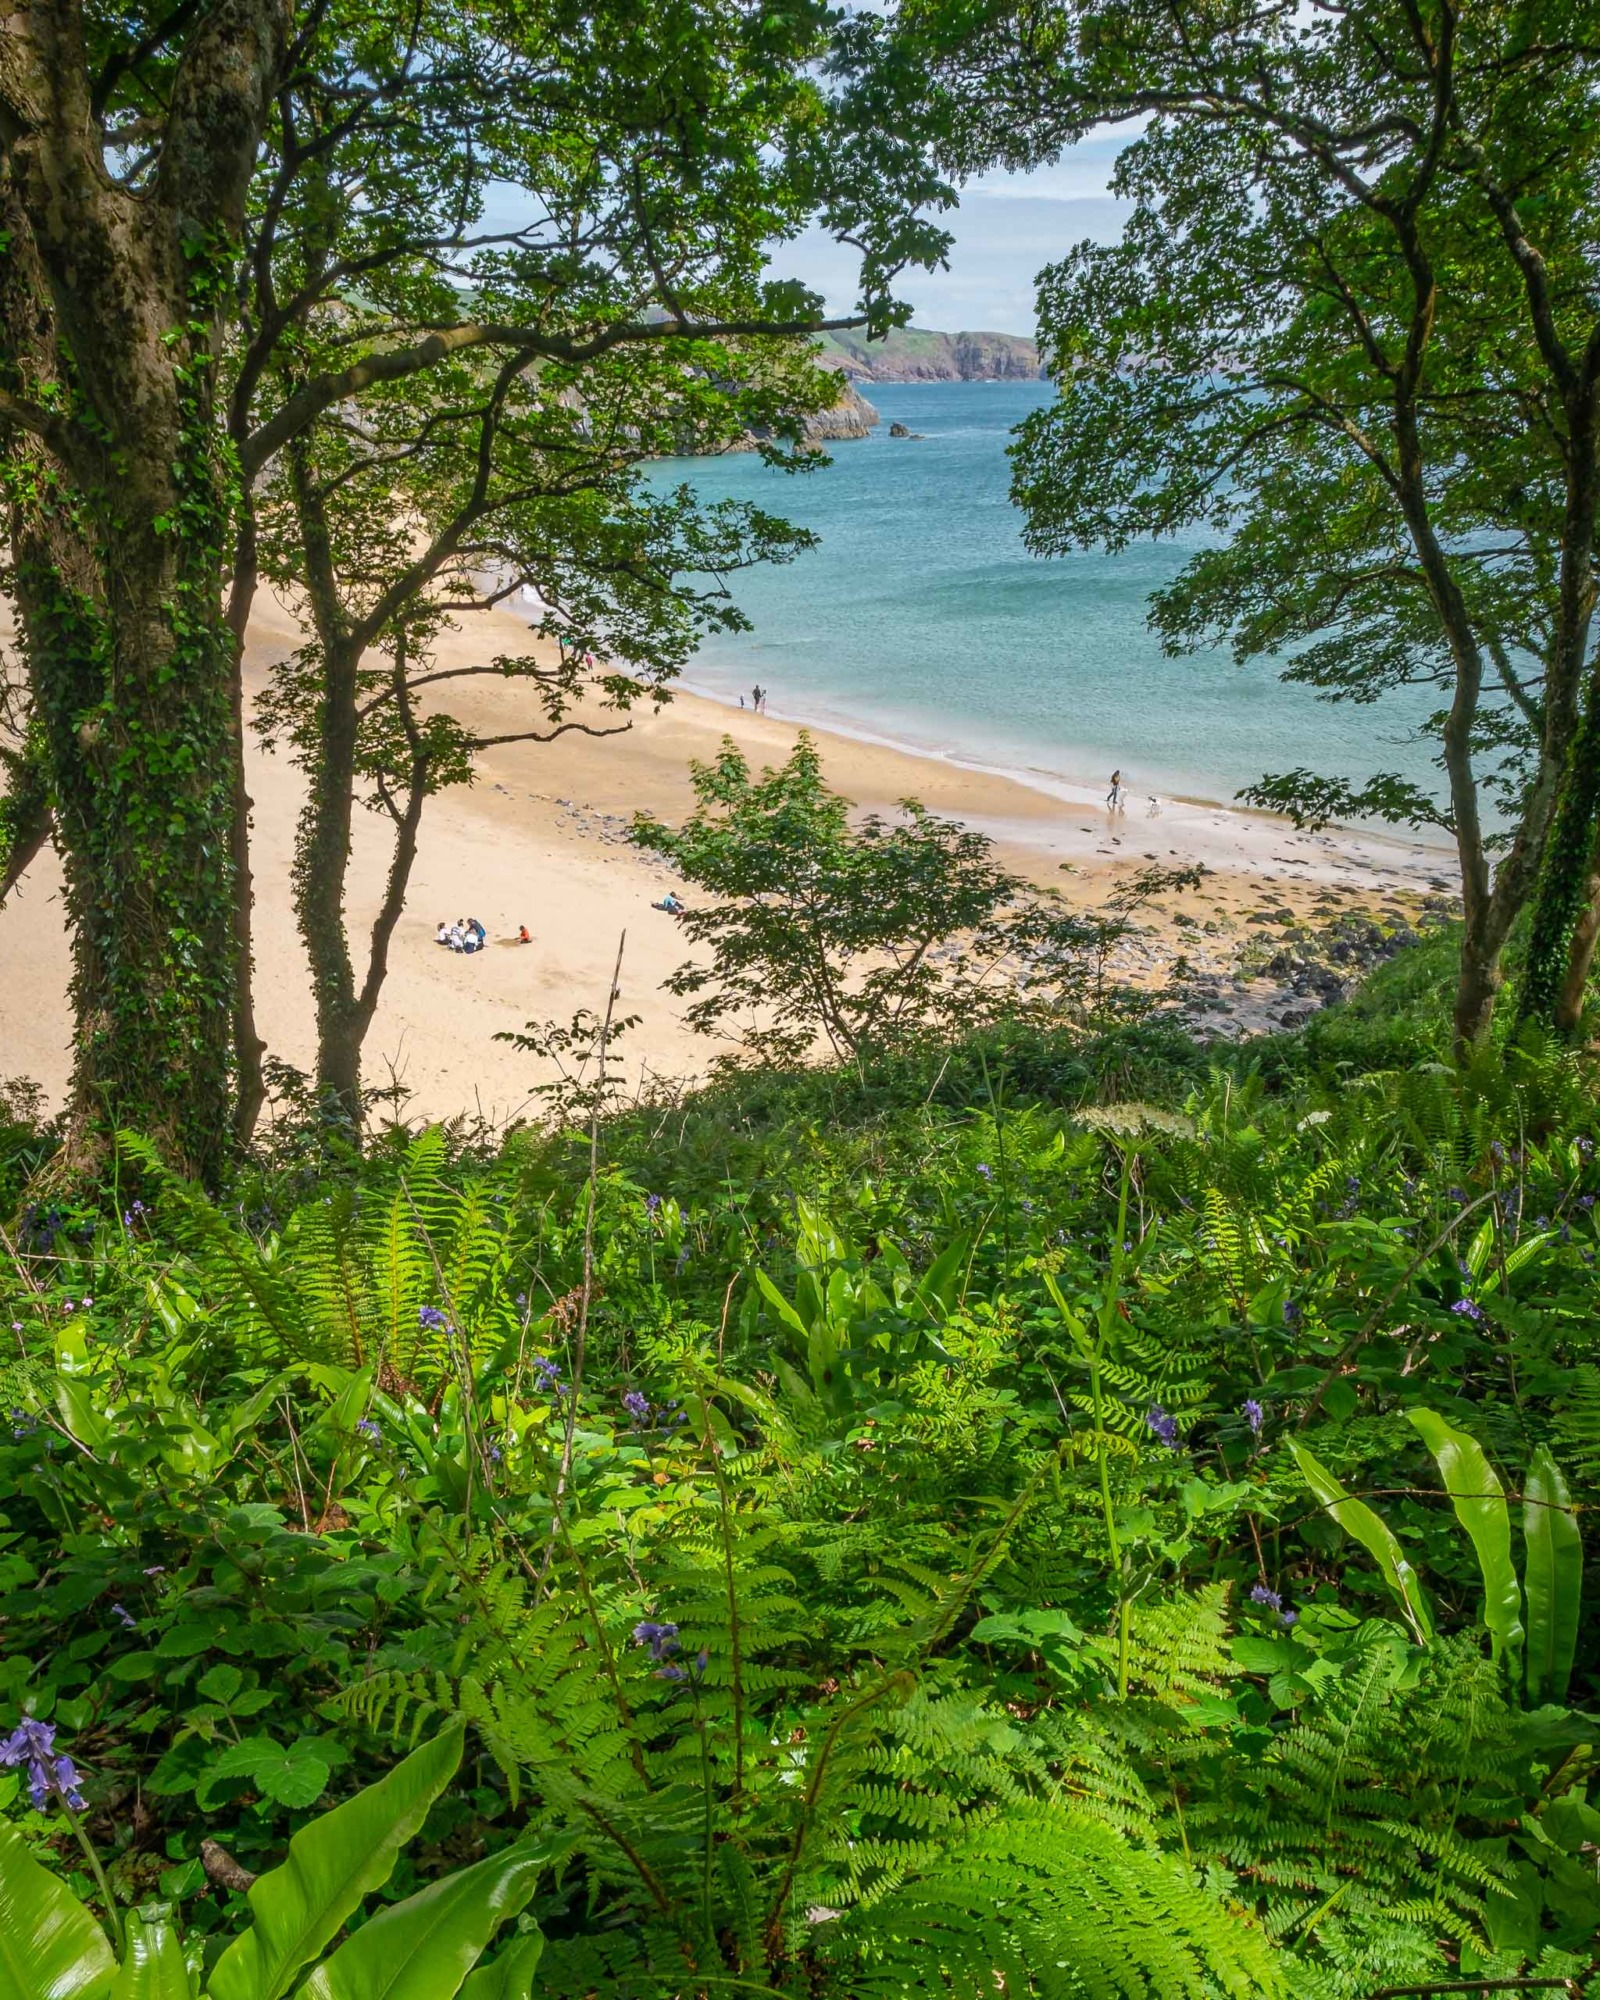 Bluebells, ferns and woods next to the beach at Barafundle